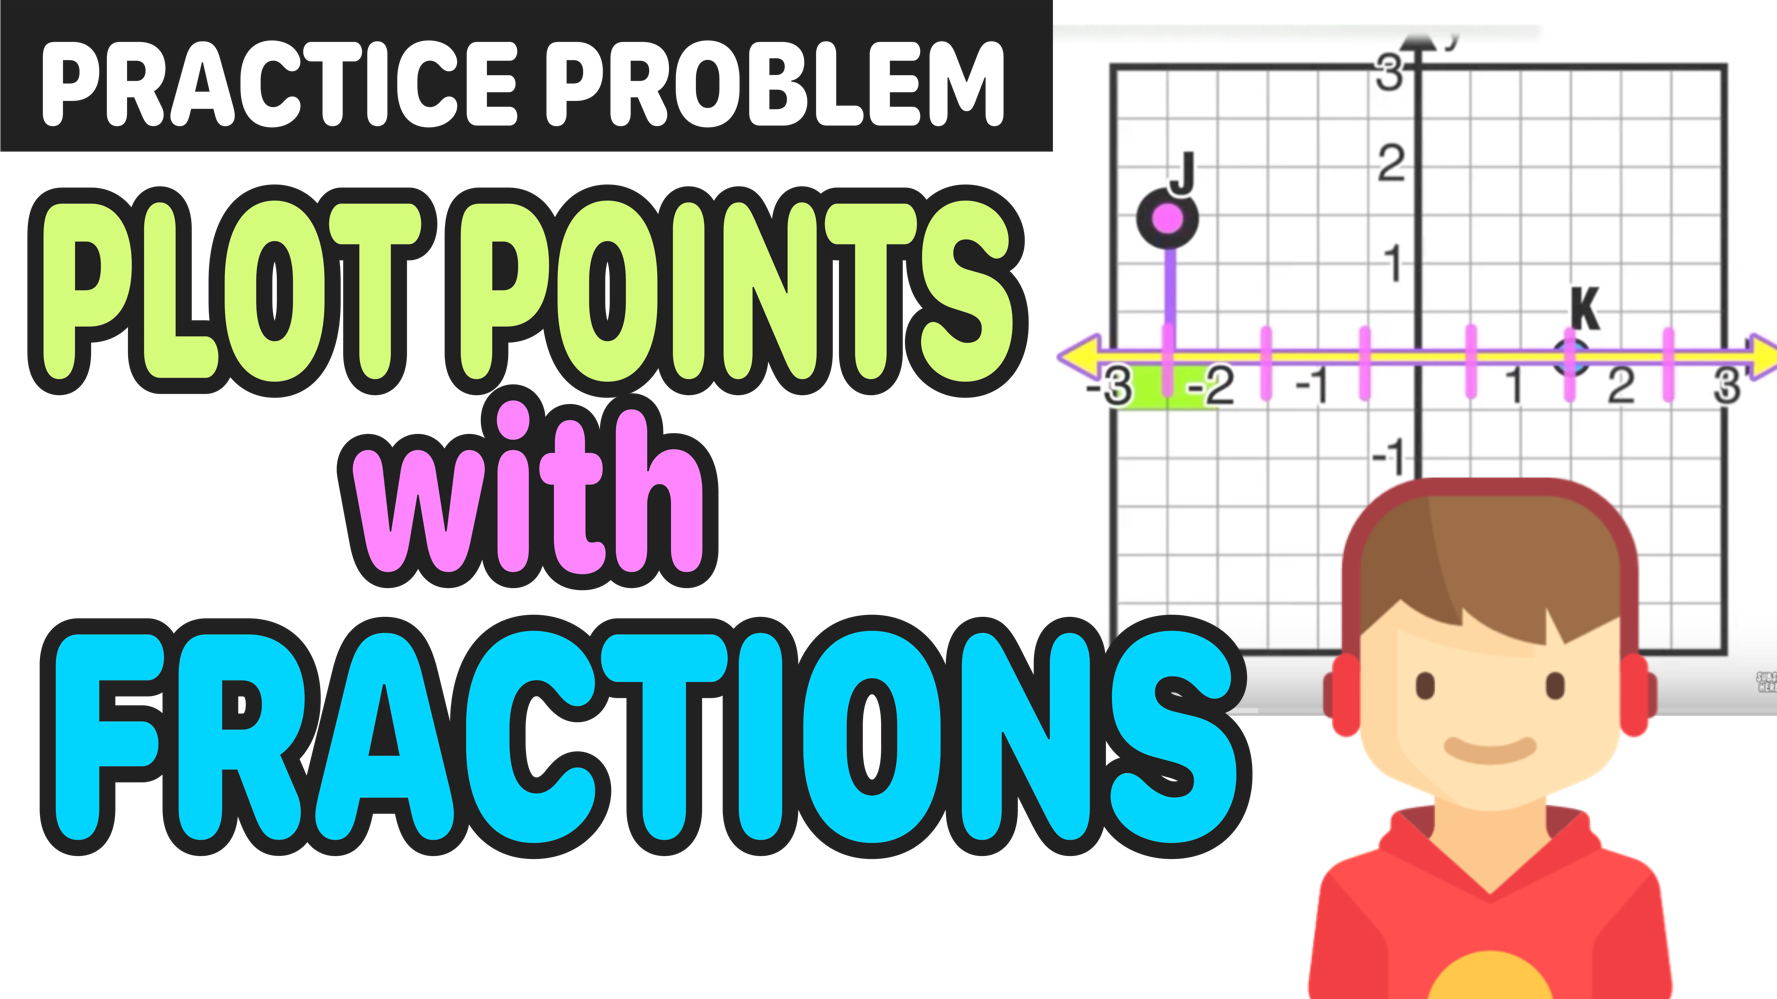 Teaching Kids How To Plot Points With Fractions